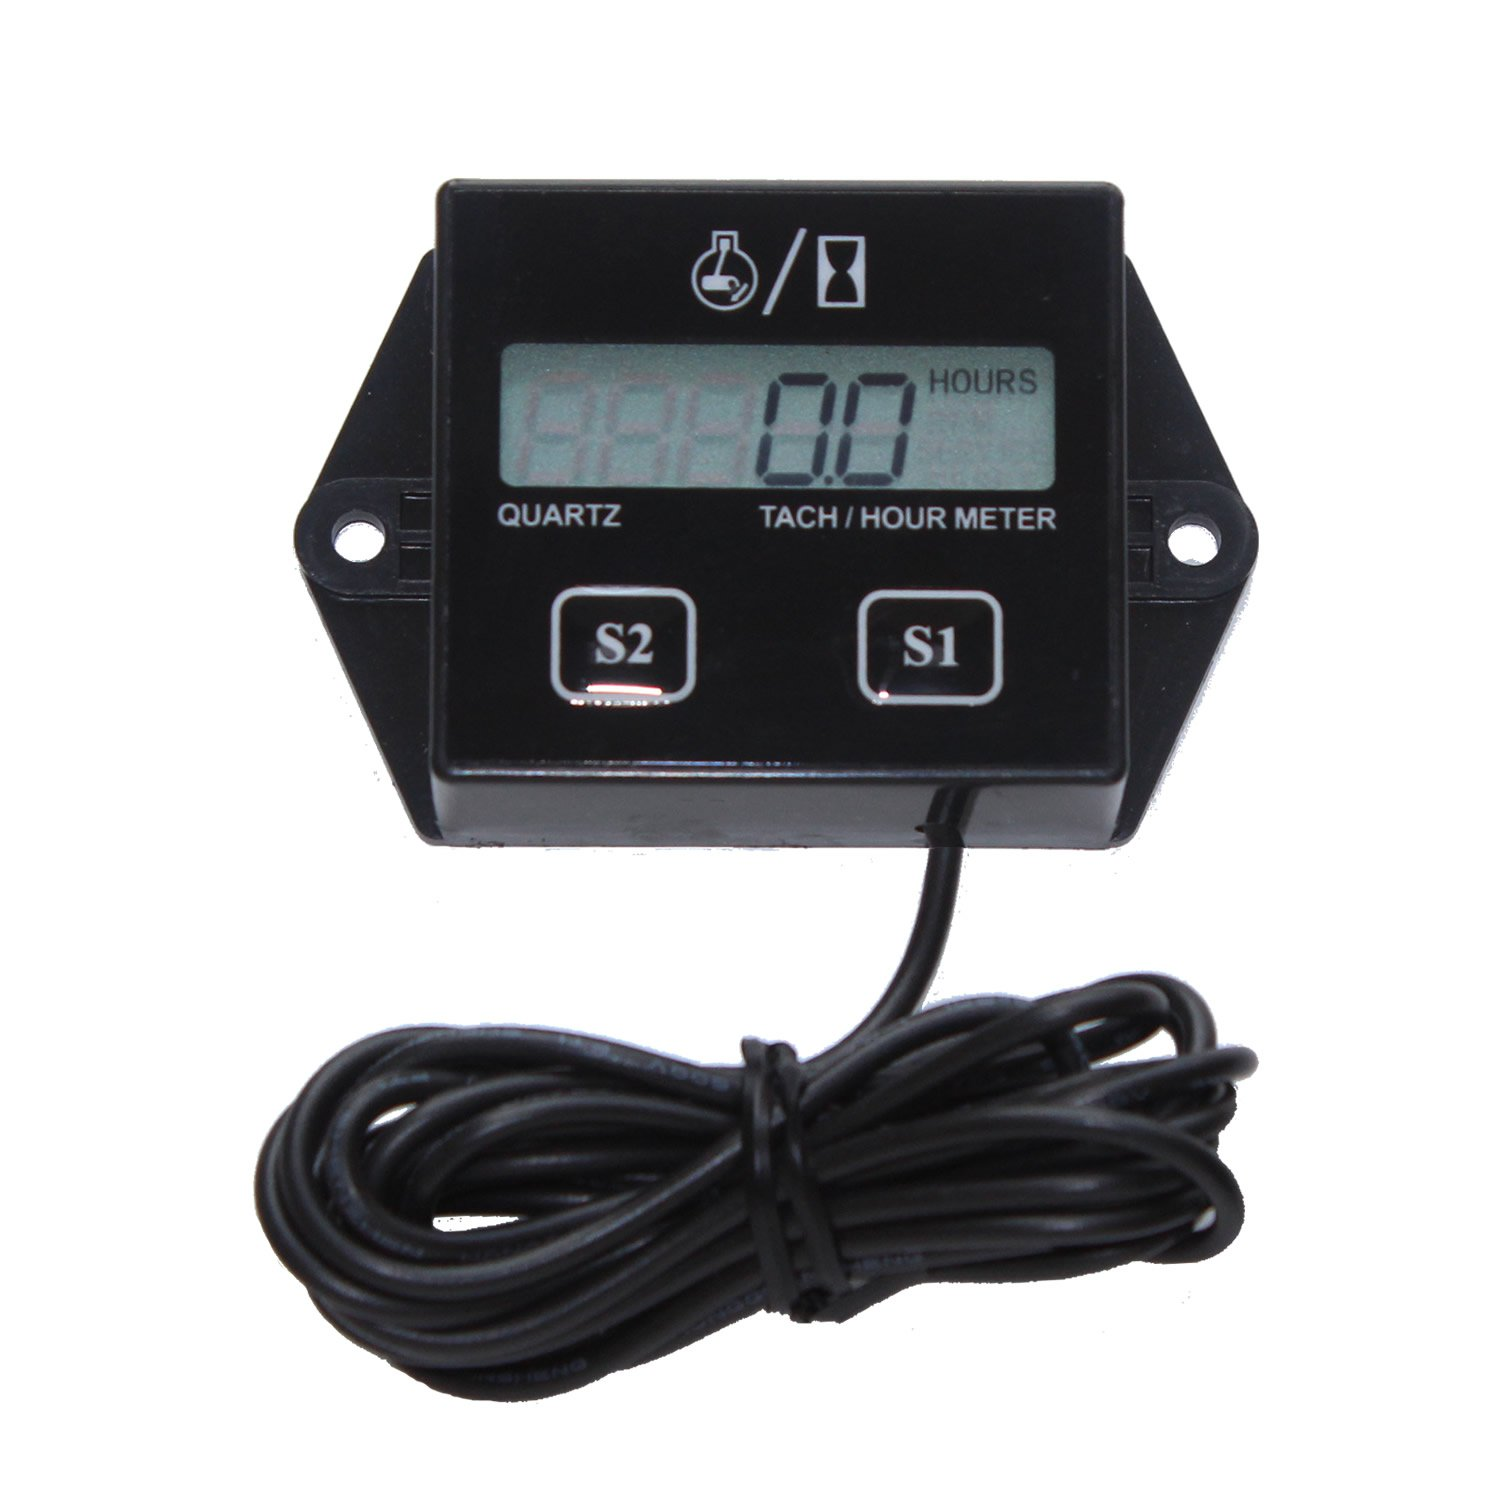 Inductive Hour Meter for 2 Stroke & 4 Stroke Small Engine, Timorn Replaceable Battery Waterproof Tachometer for Marine ATV Motorcycle UTV Engine (Black) T886